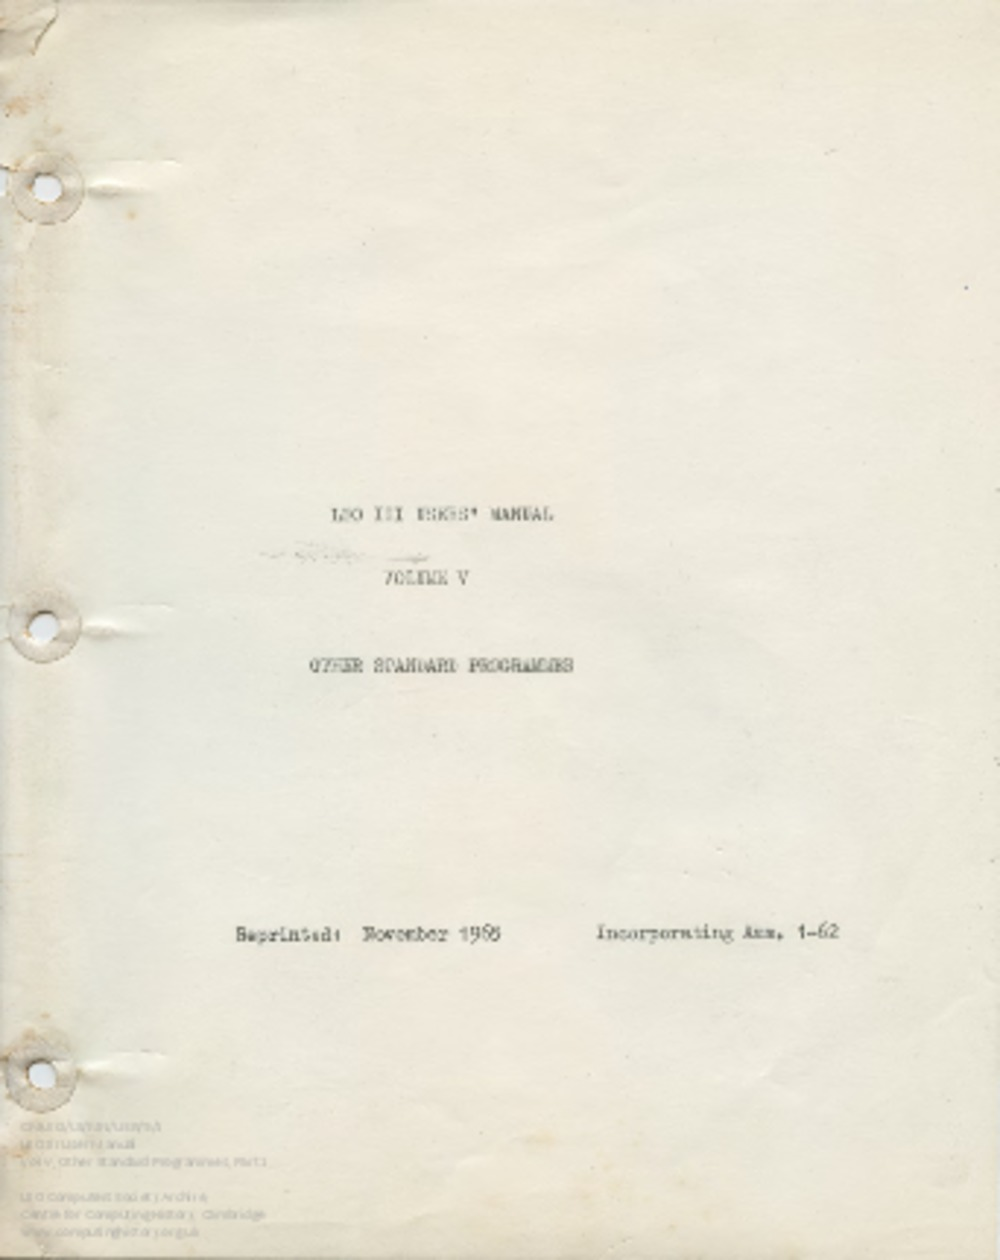 Article: 59154 User Manual for LEO III: Vol 5, Part 1 - Test Programmes